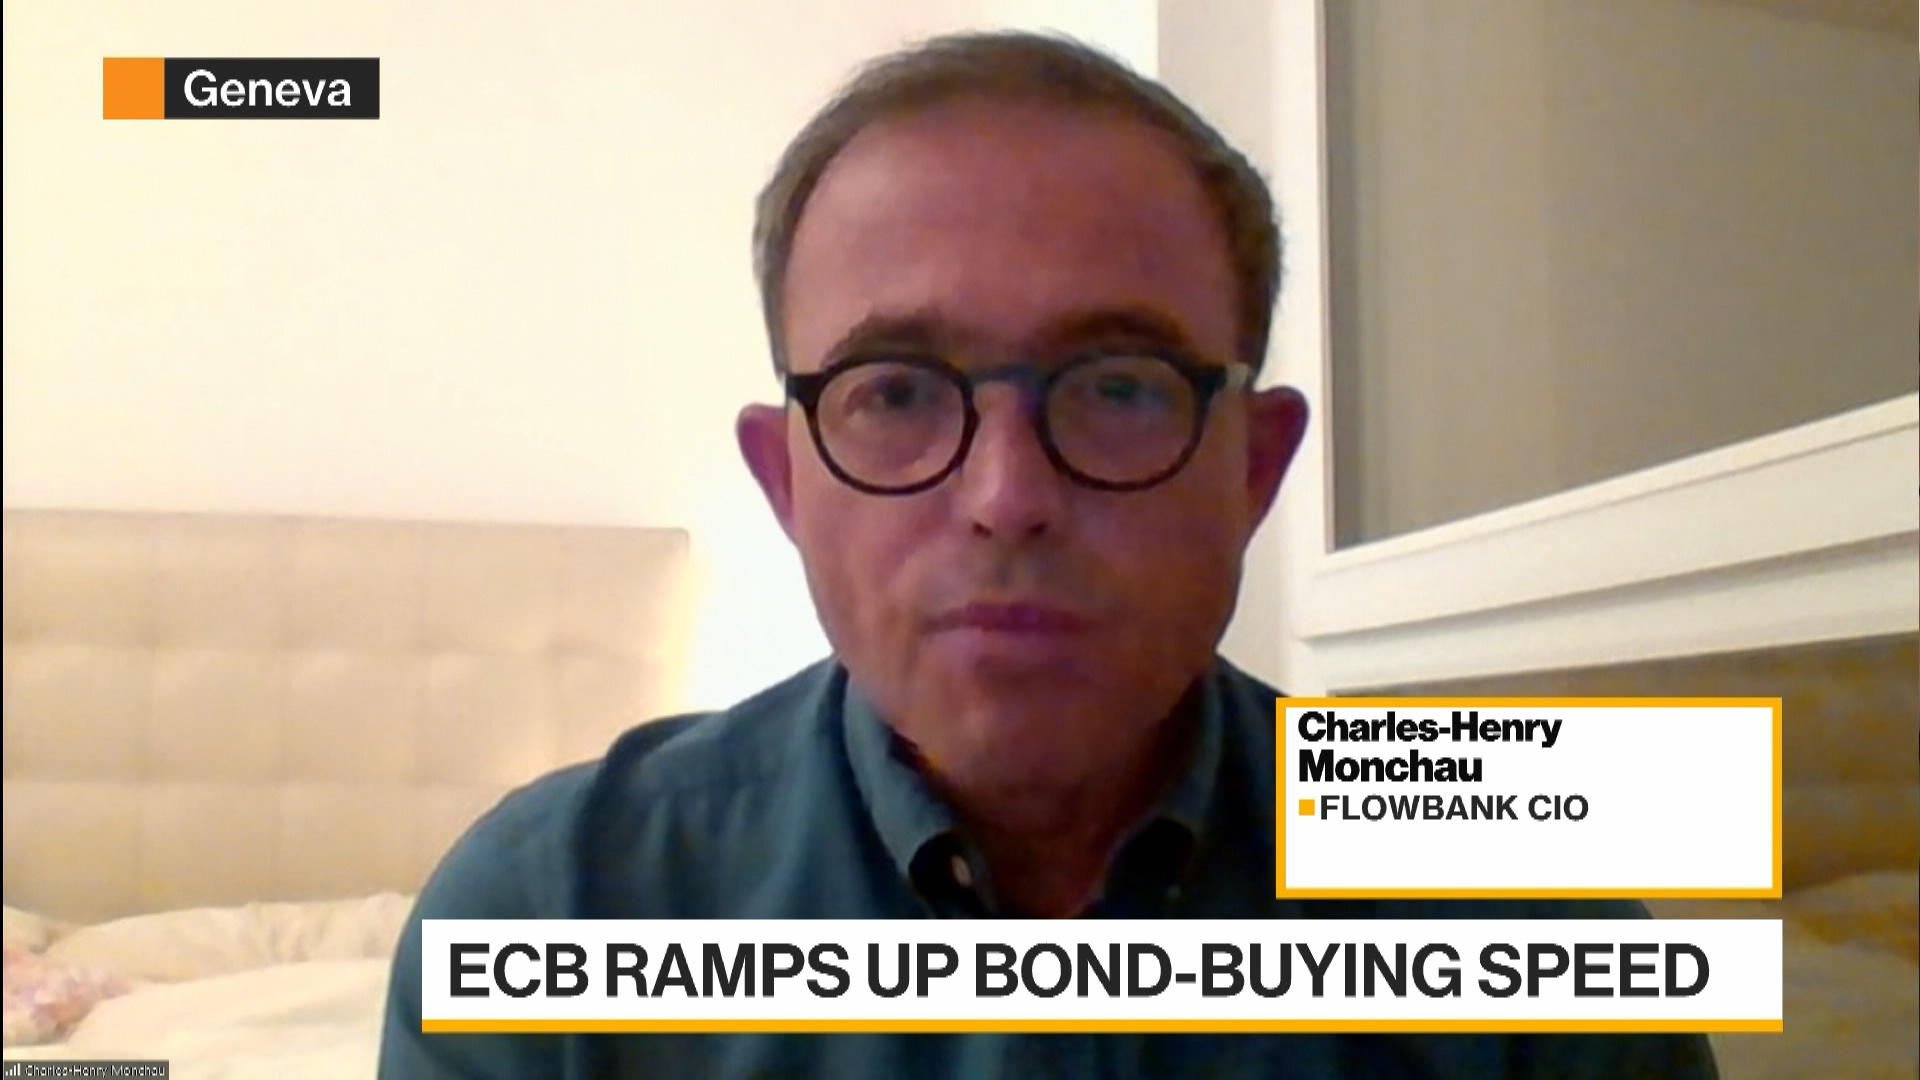 FlowBank's Monchau on Bond Yields, Reflation vs. Inflation, and Long-Term Central Bank Scenarios